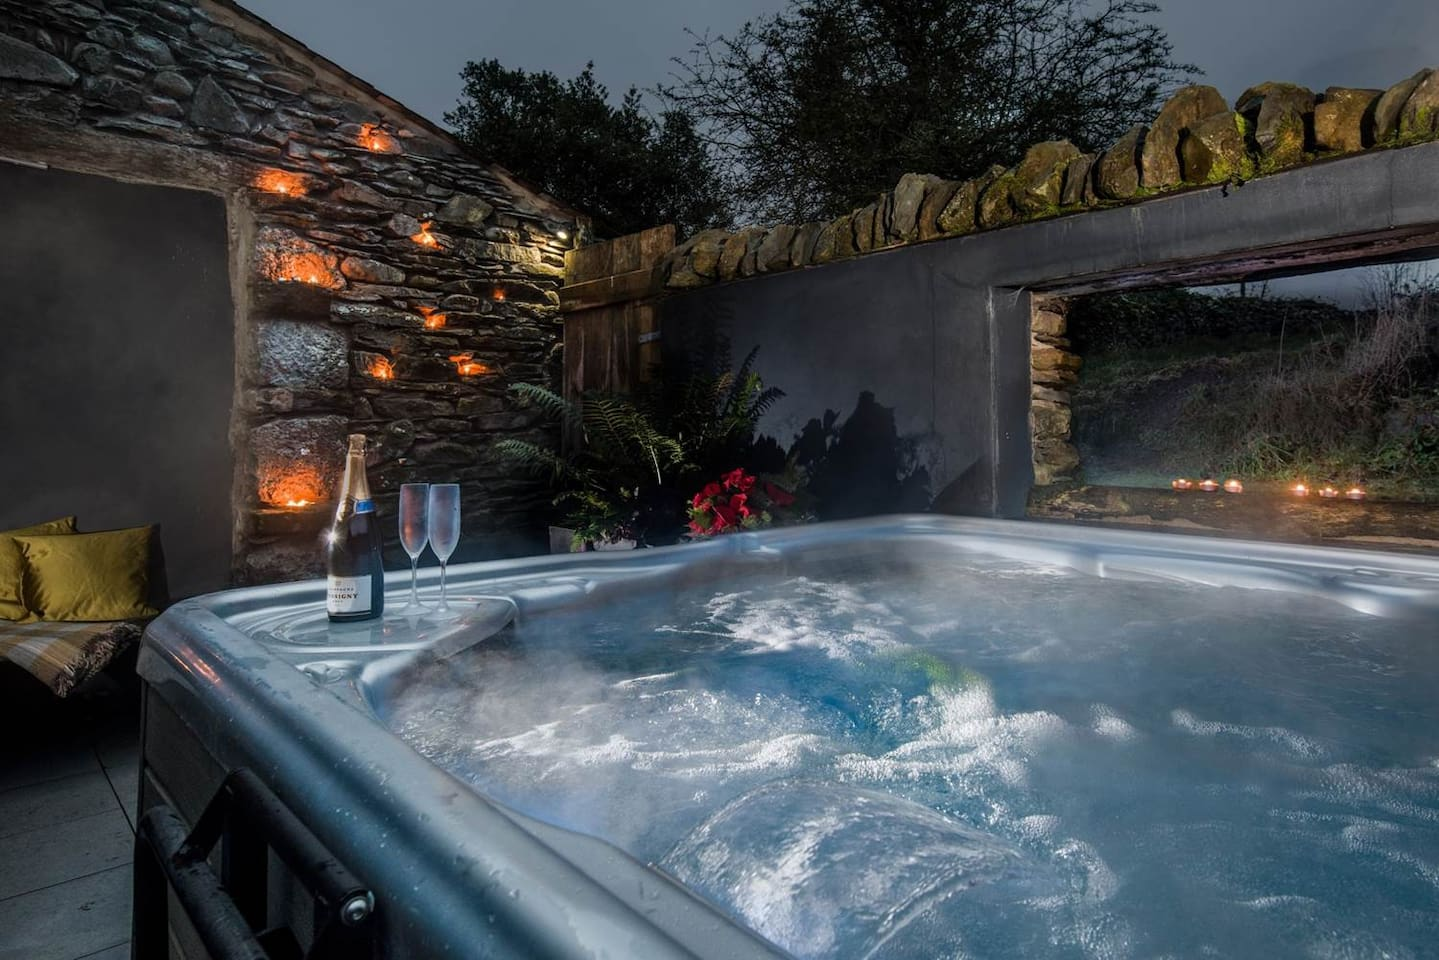 Hot tub in sunken walled courtyard with window view over our field